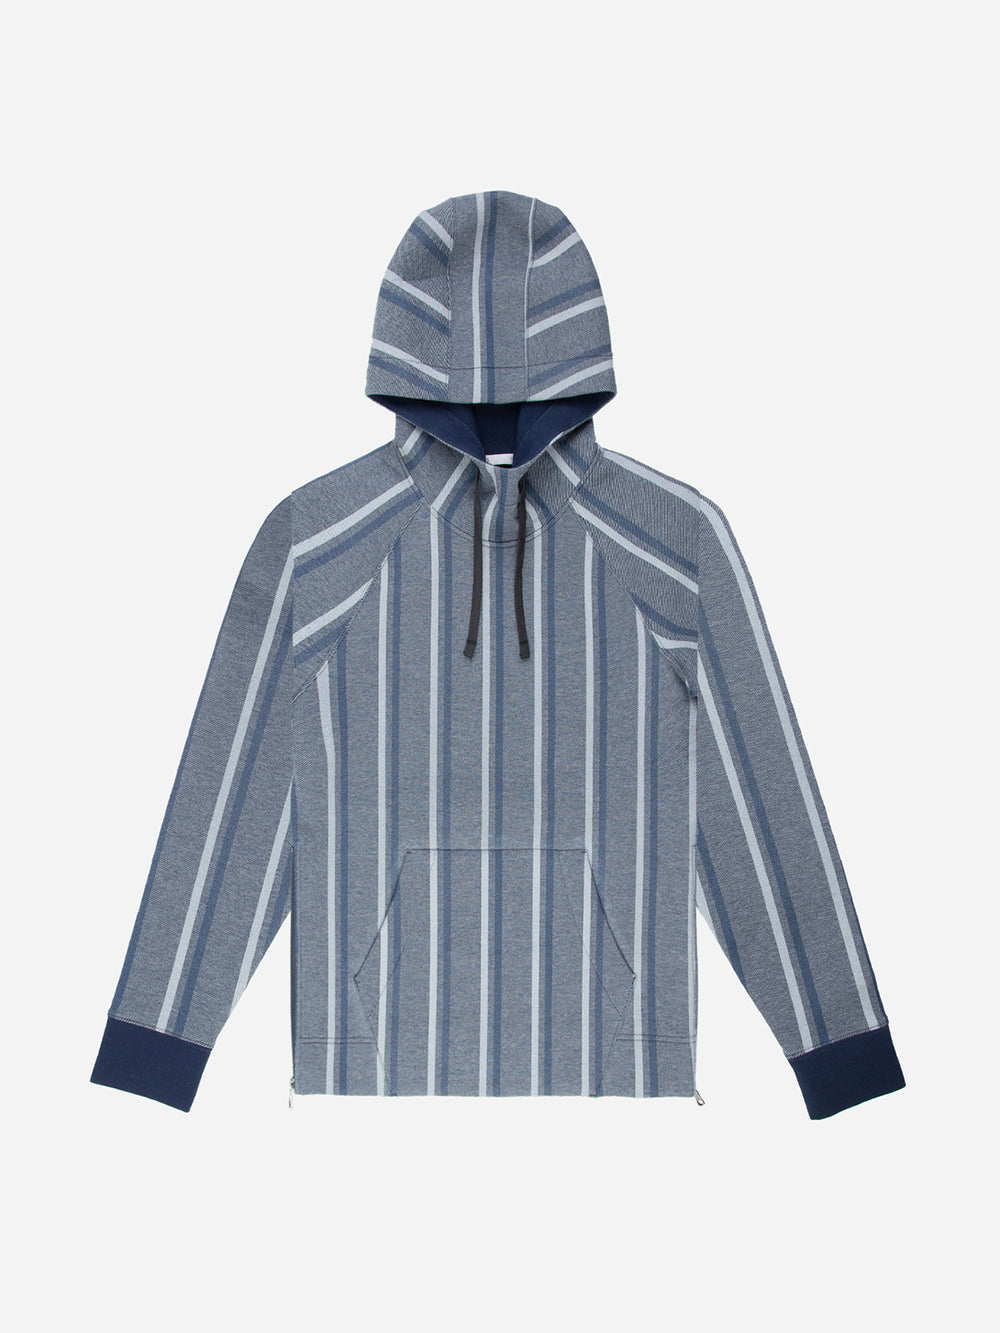 NAVY STRIPE hoodie for men ons clothing rover hoodie black friday deals